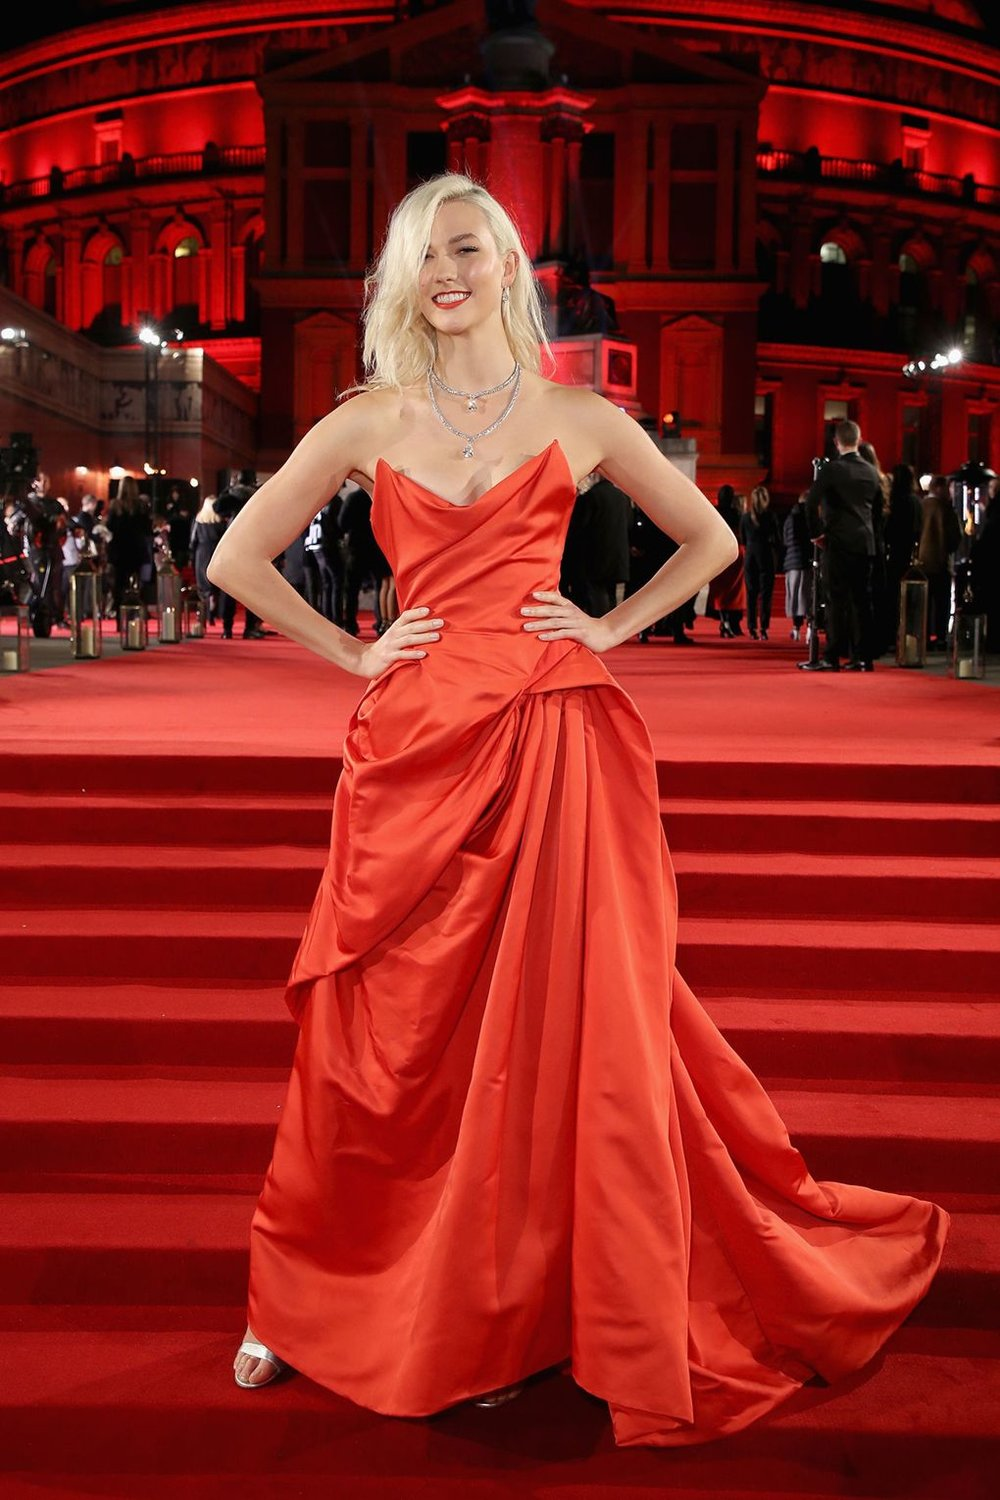 Kloss on Over - The Supermodel Karlie Kloss wowed with her red Vivienne Westwood couture.